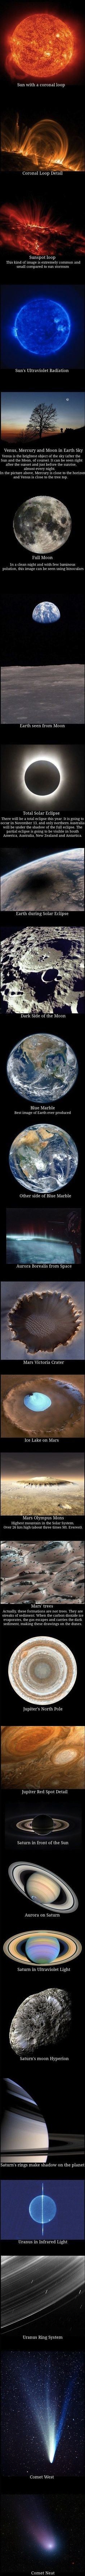 Series of great images from our solar system.